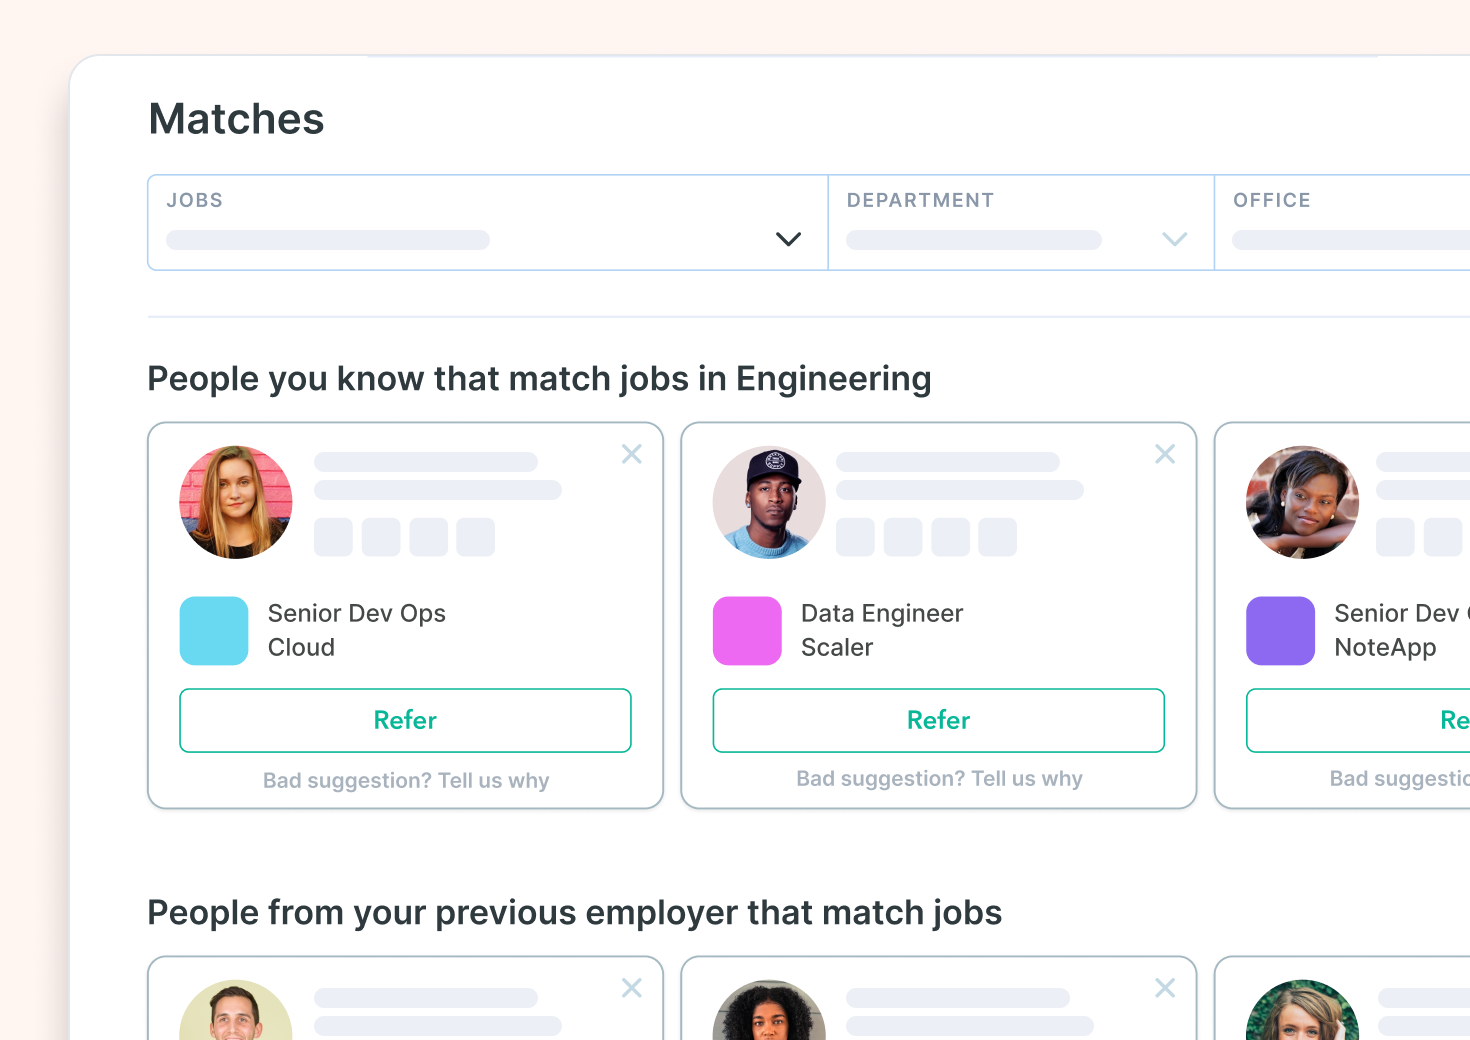 Get smart referral suggestions with Drafted Matches.